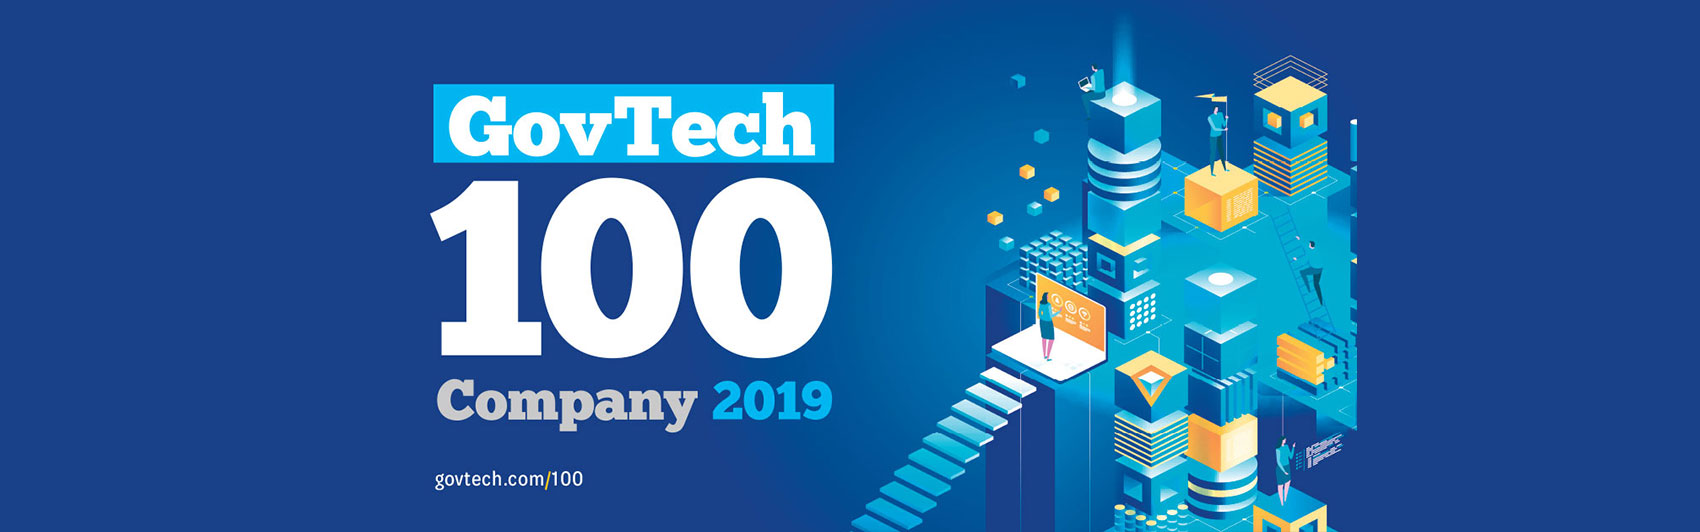 NEOGOV Recognized in GovTech 100